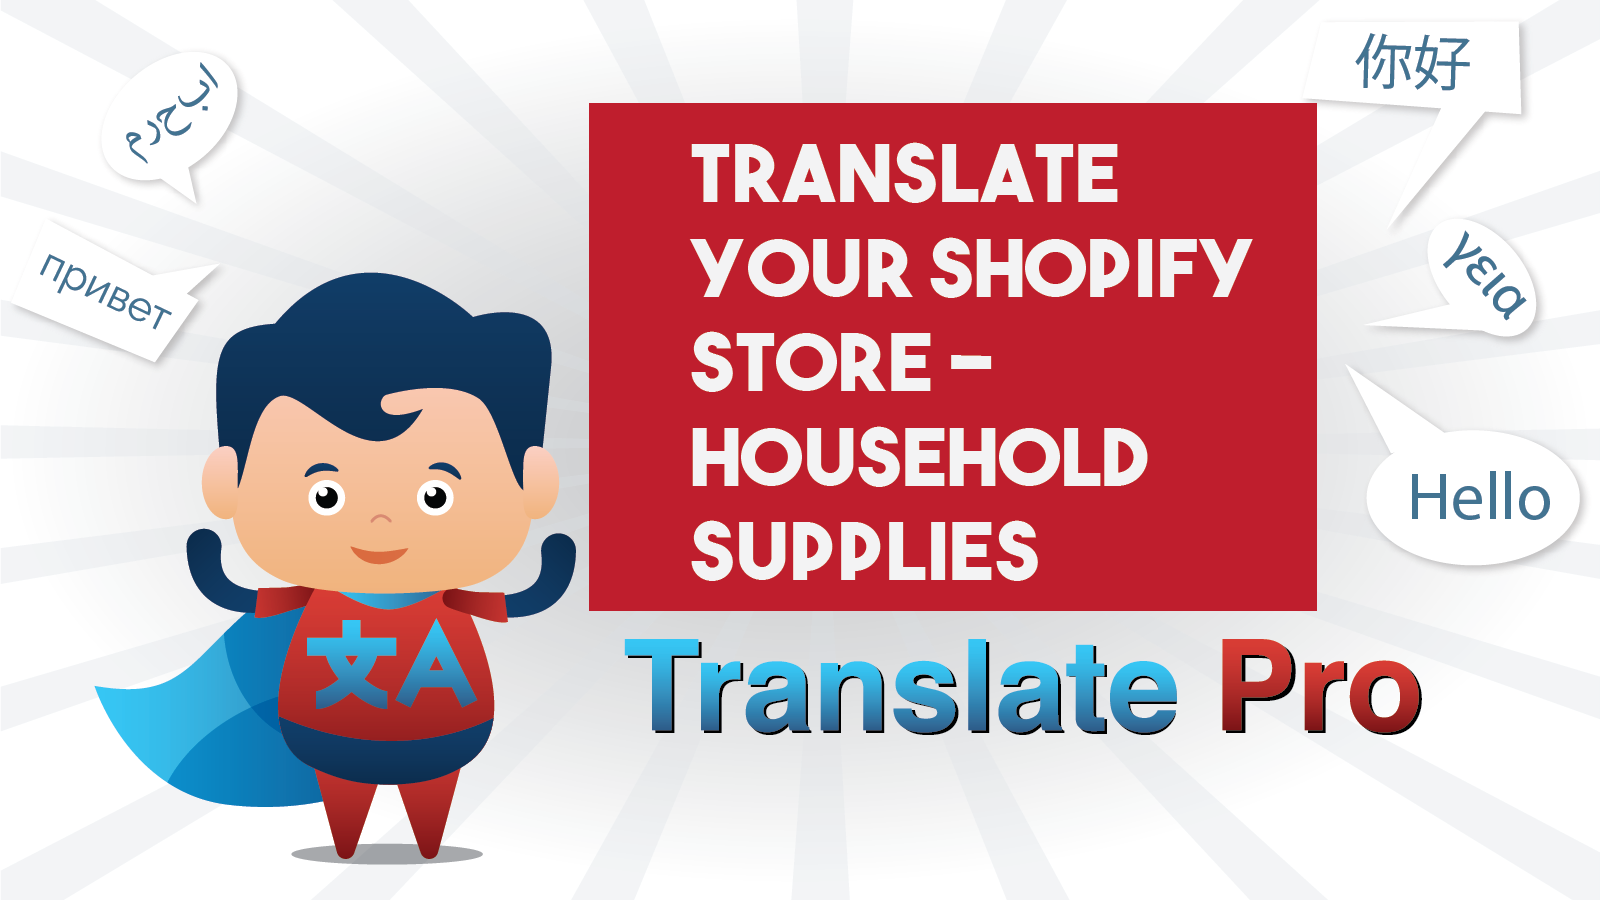 How To Translate Your Shopify Household Supplies Store